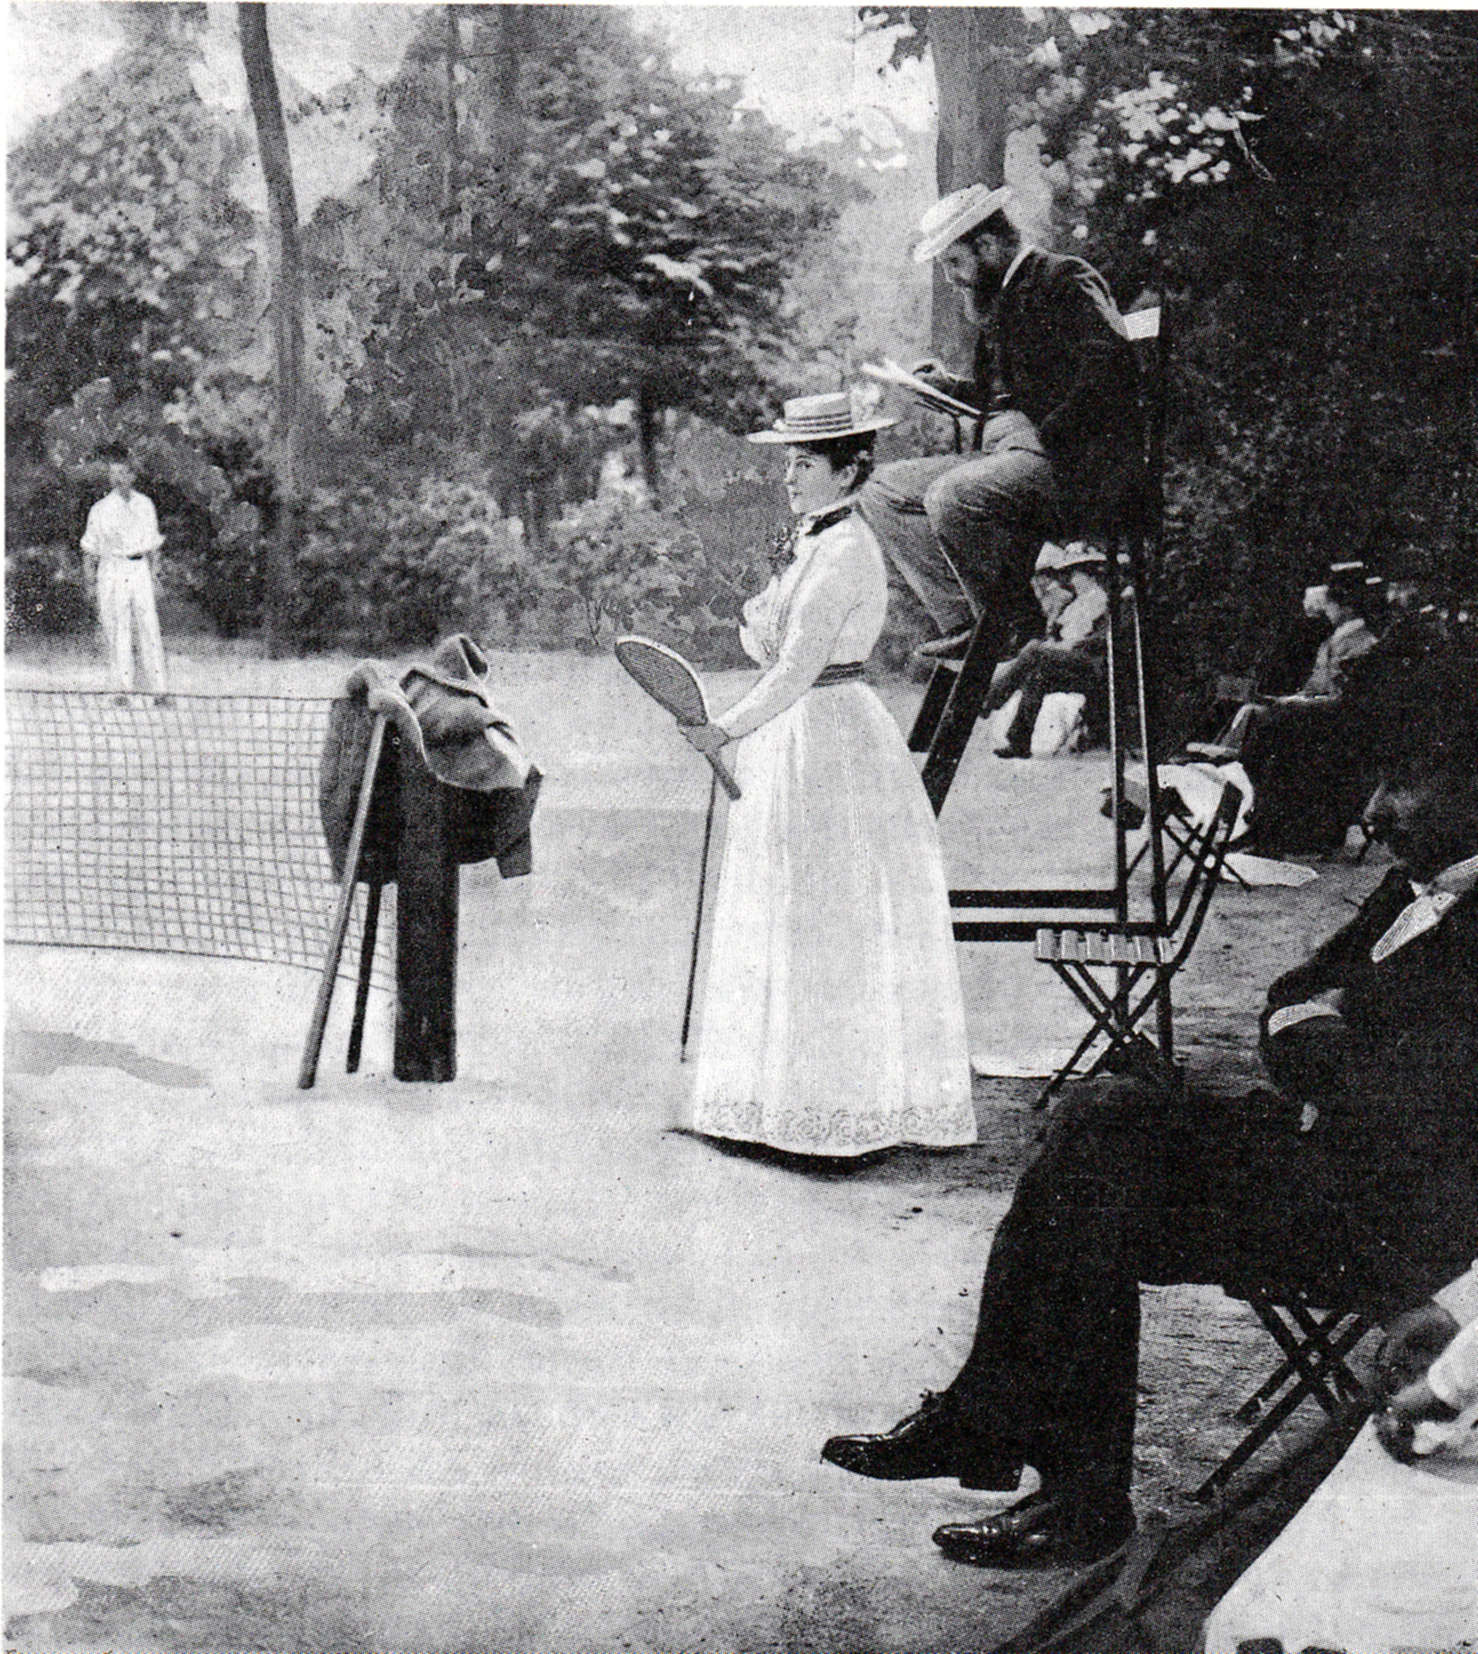 File:Tennis women 1900.jpg